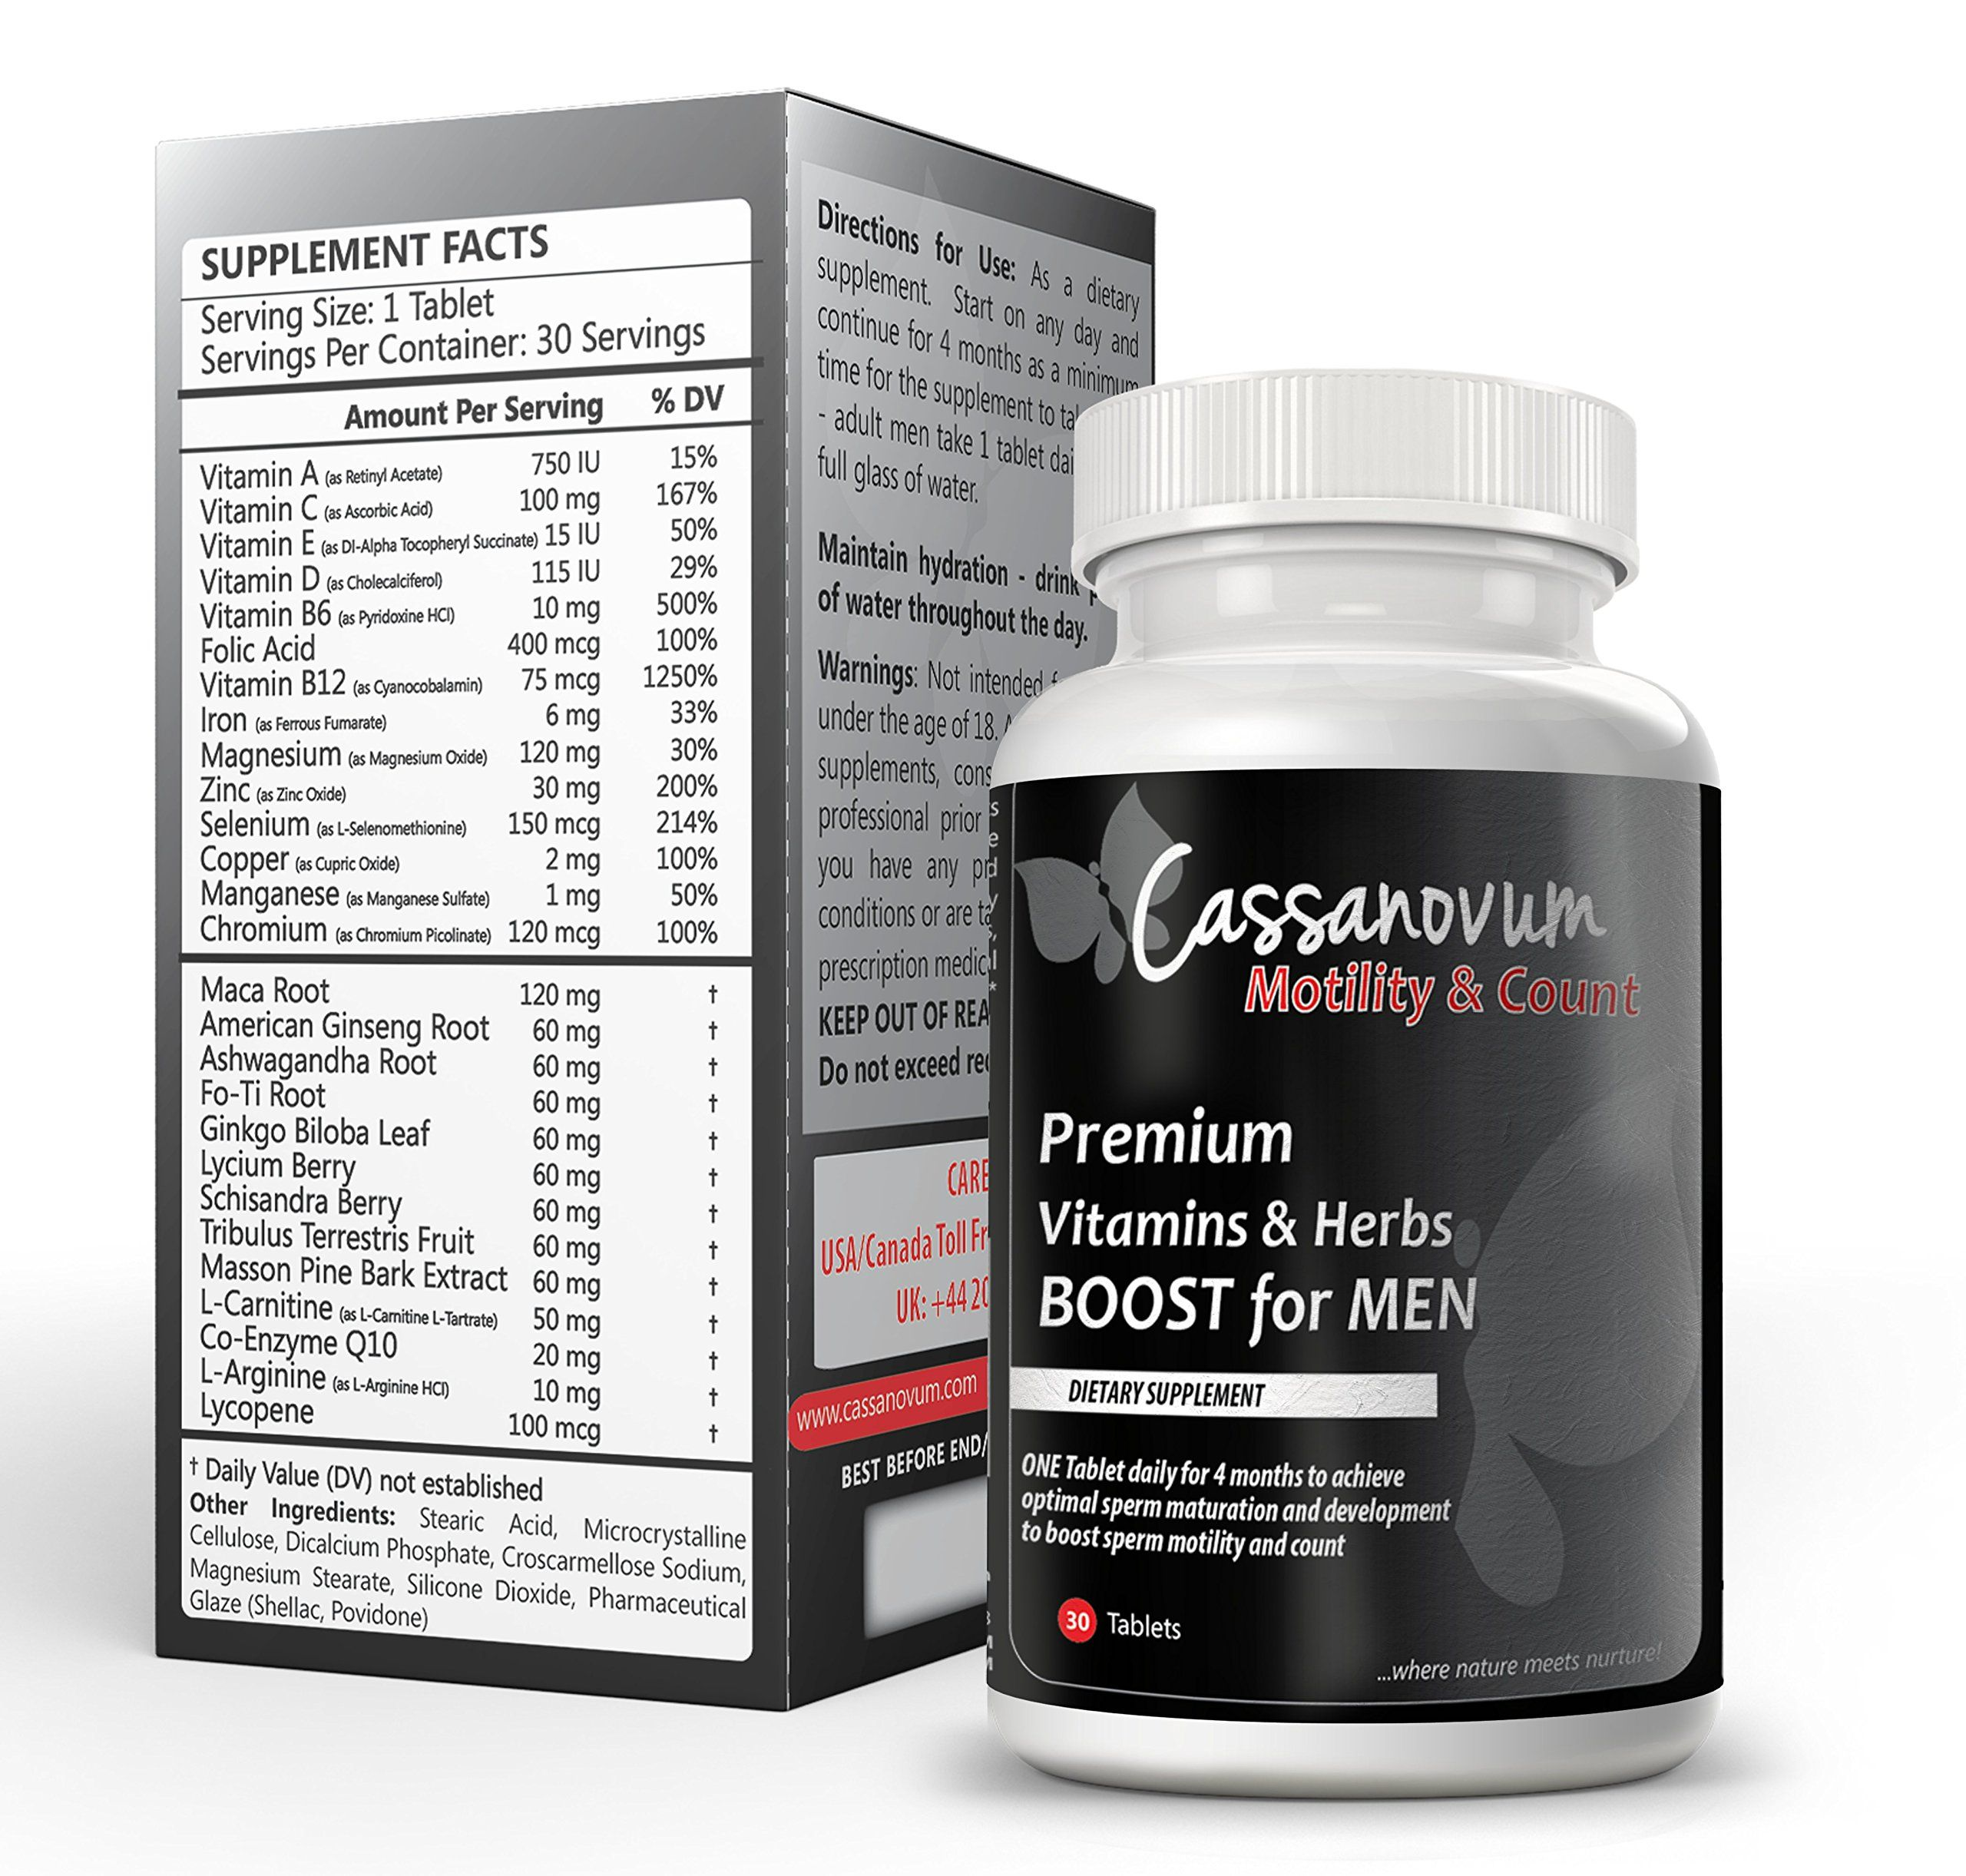 Cassanovum Motility And Count Premium Vitamins And Herbs Boost For Men Complete Spectrum Of